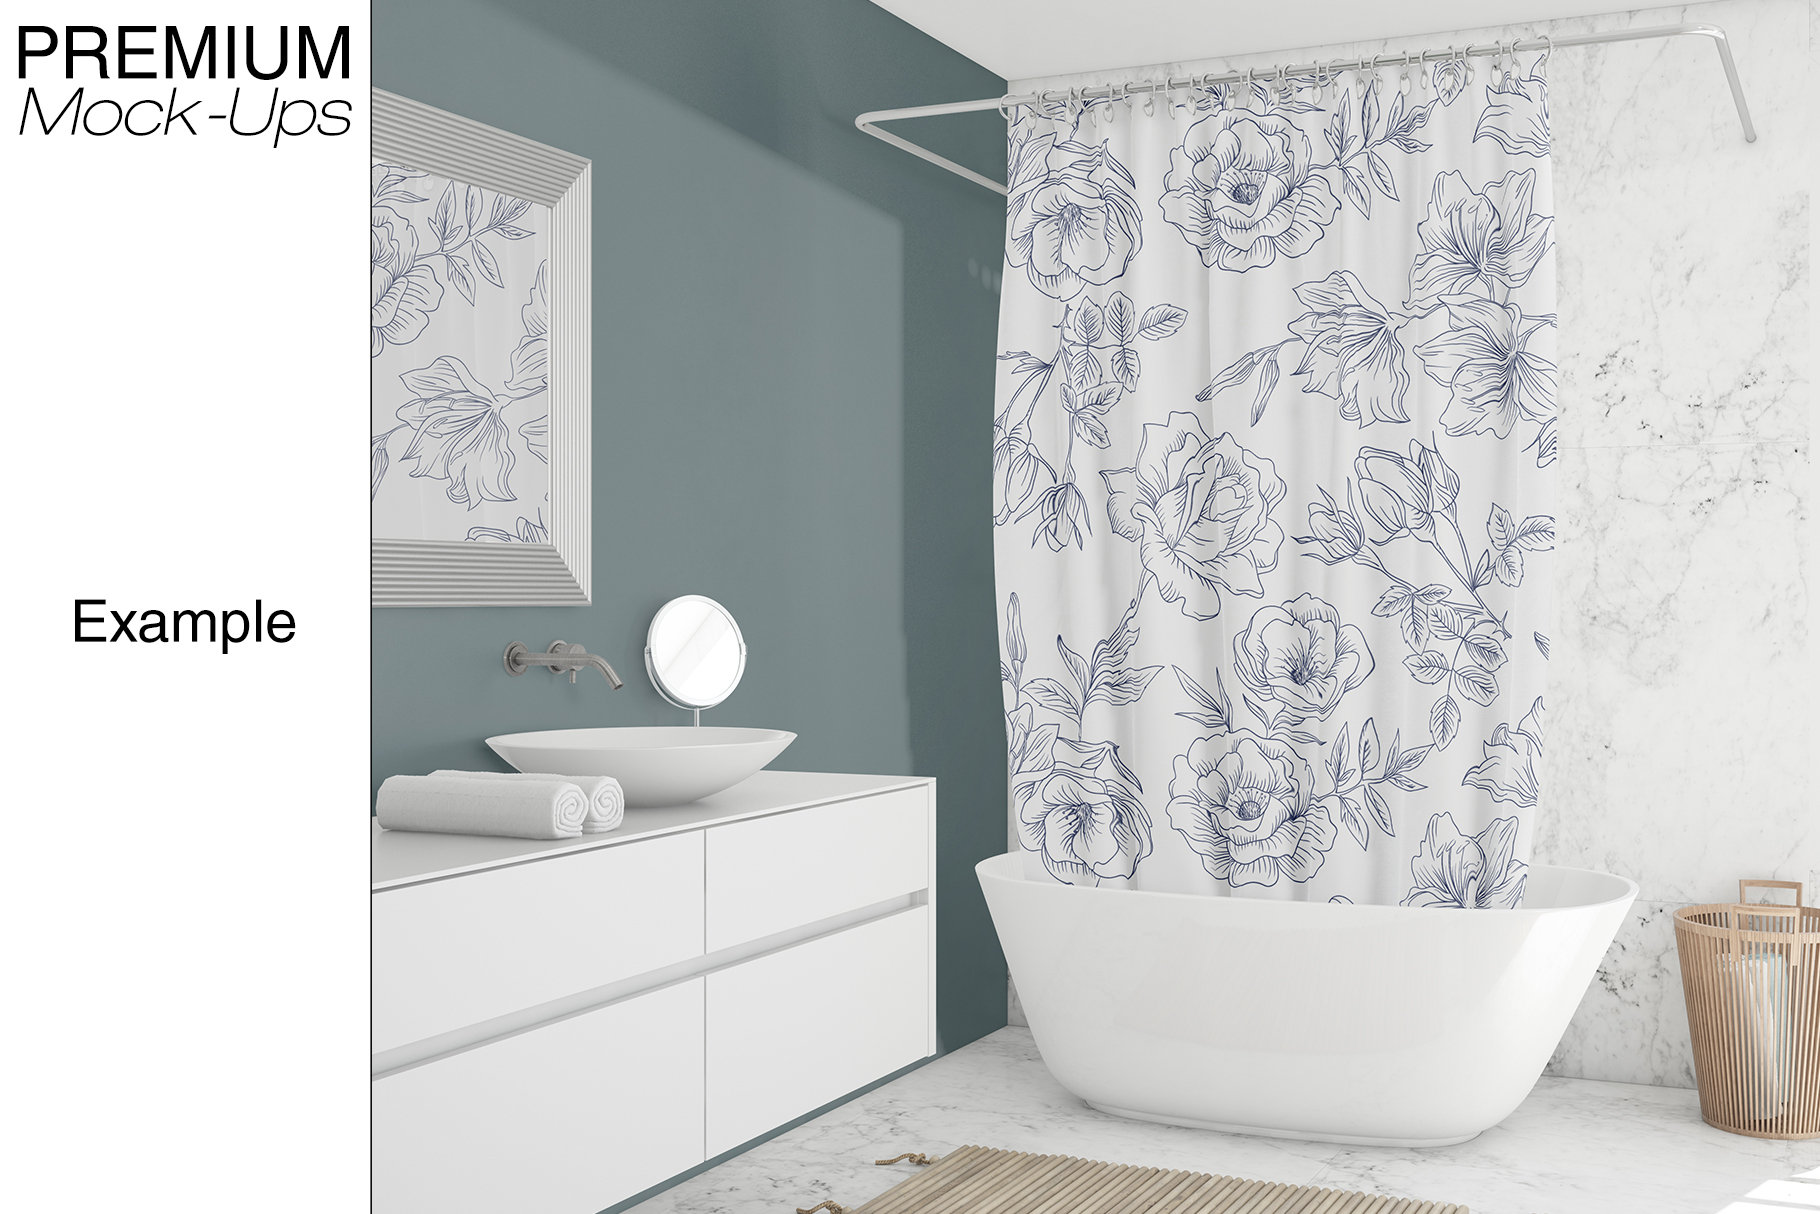 Shower Curtain Mockup Pack example image 2